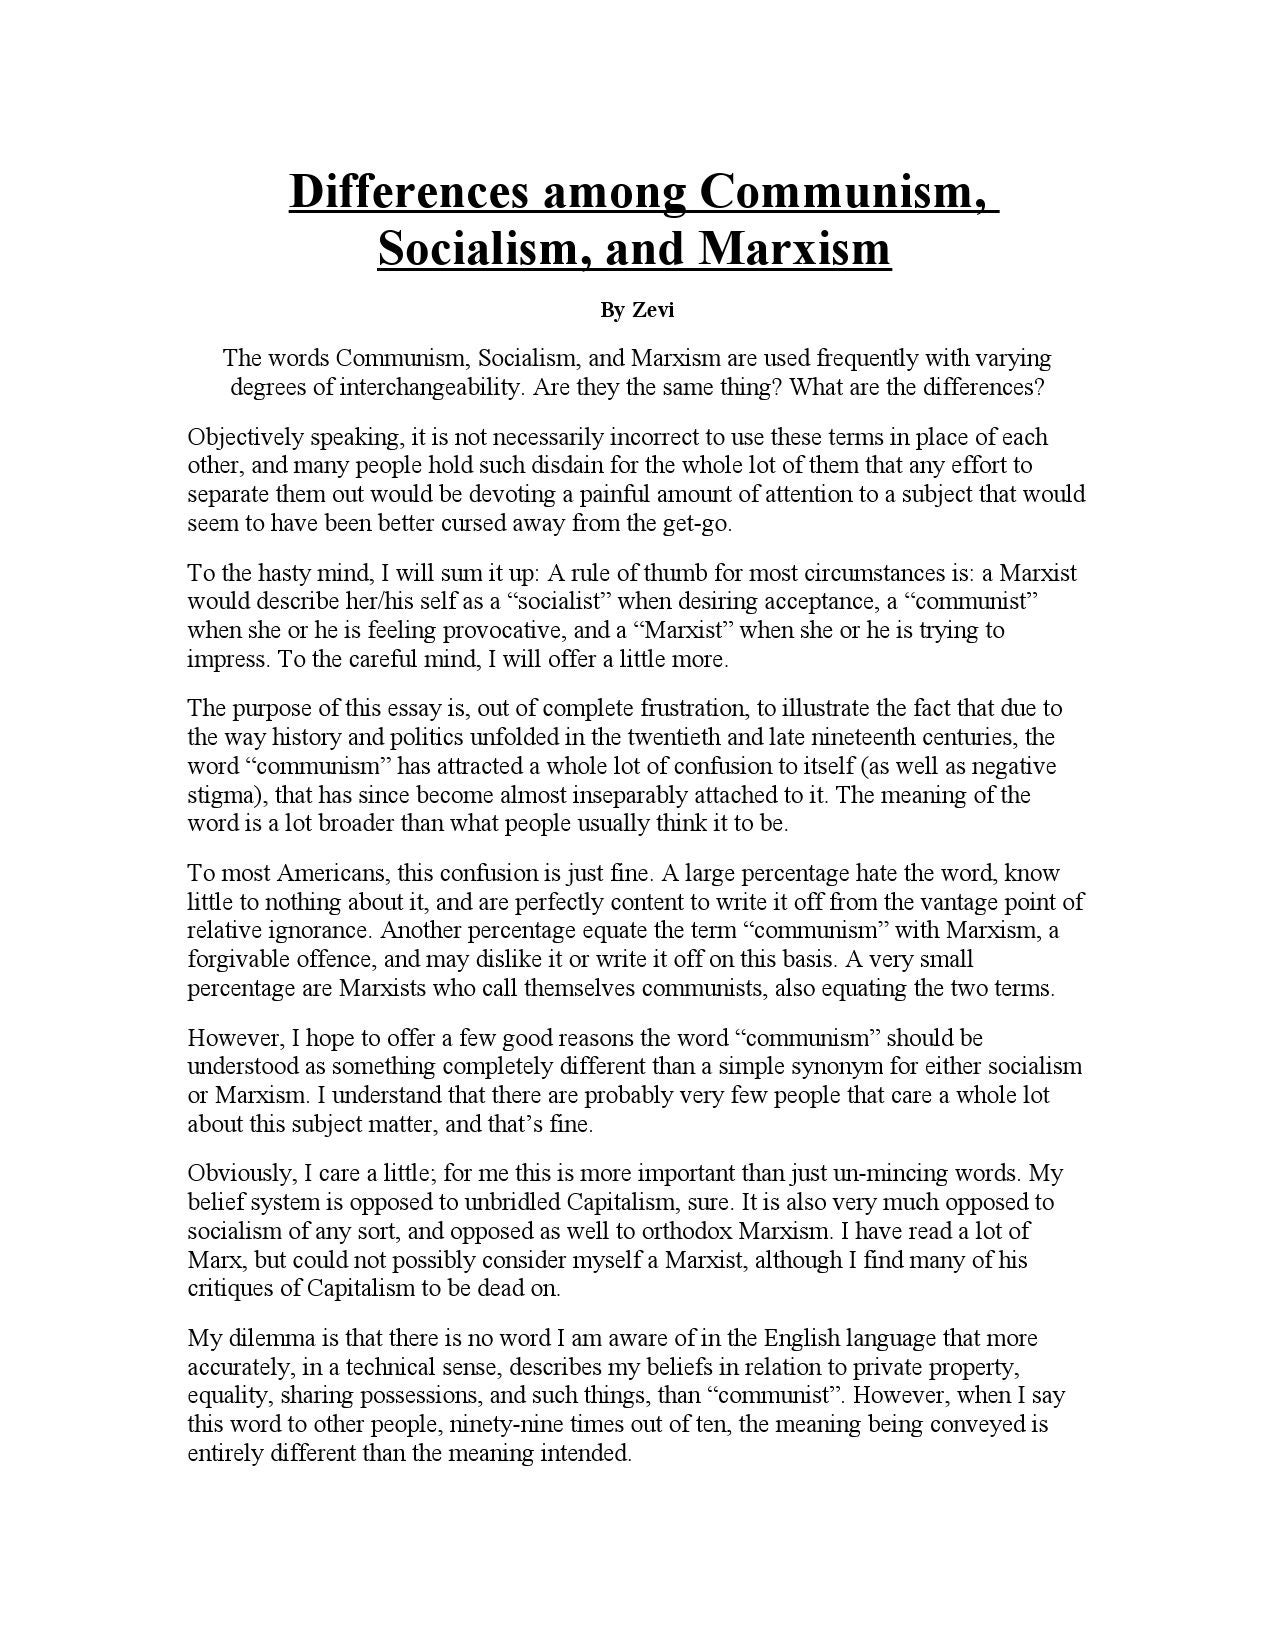 Differences among Communism, Socialism, and Marxism by